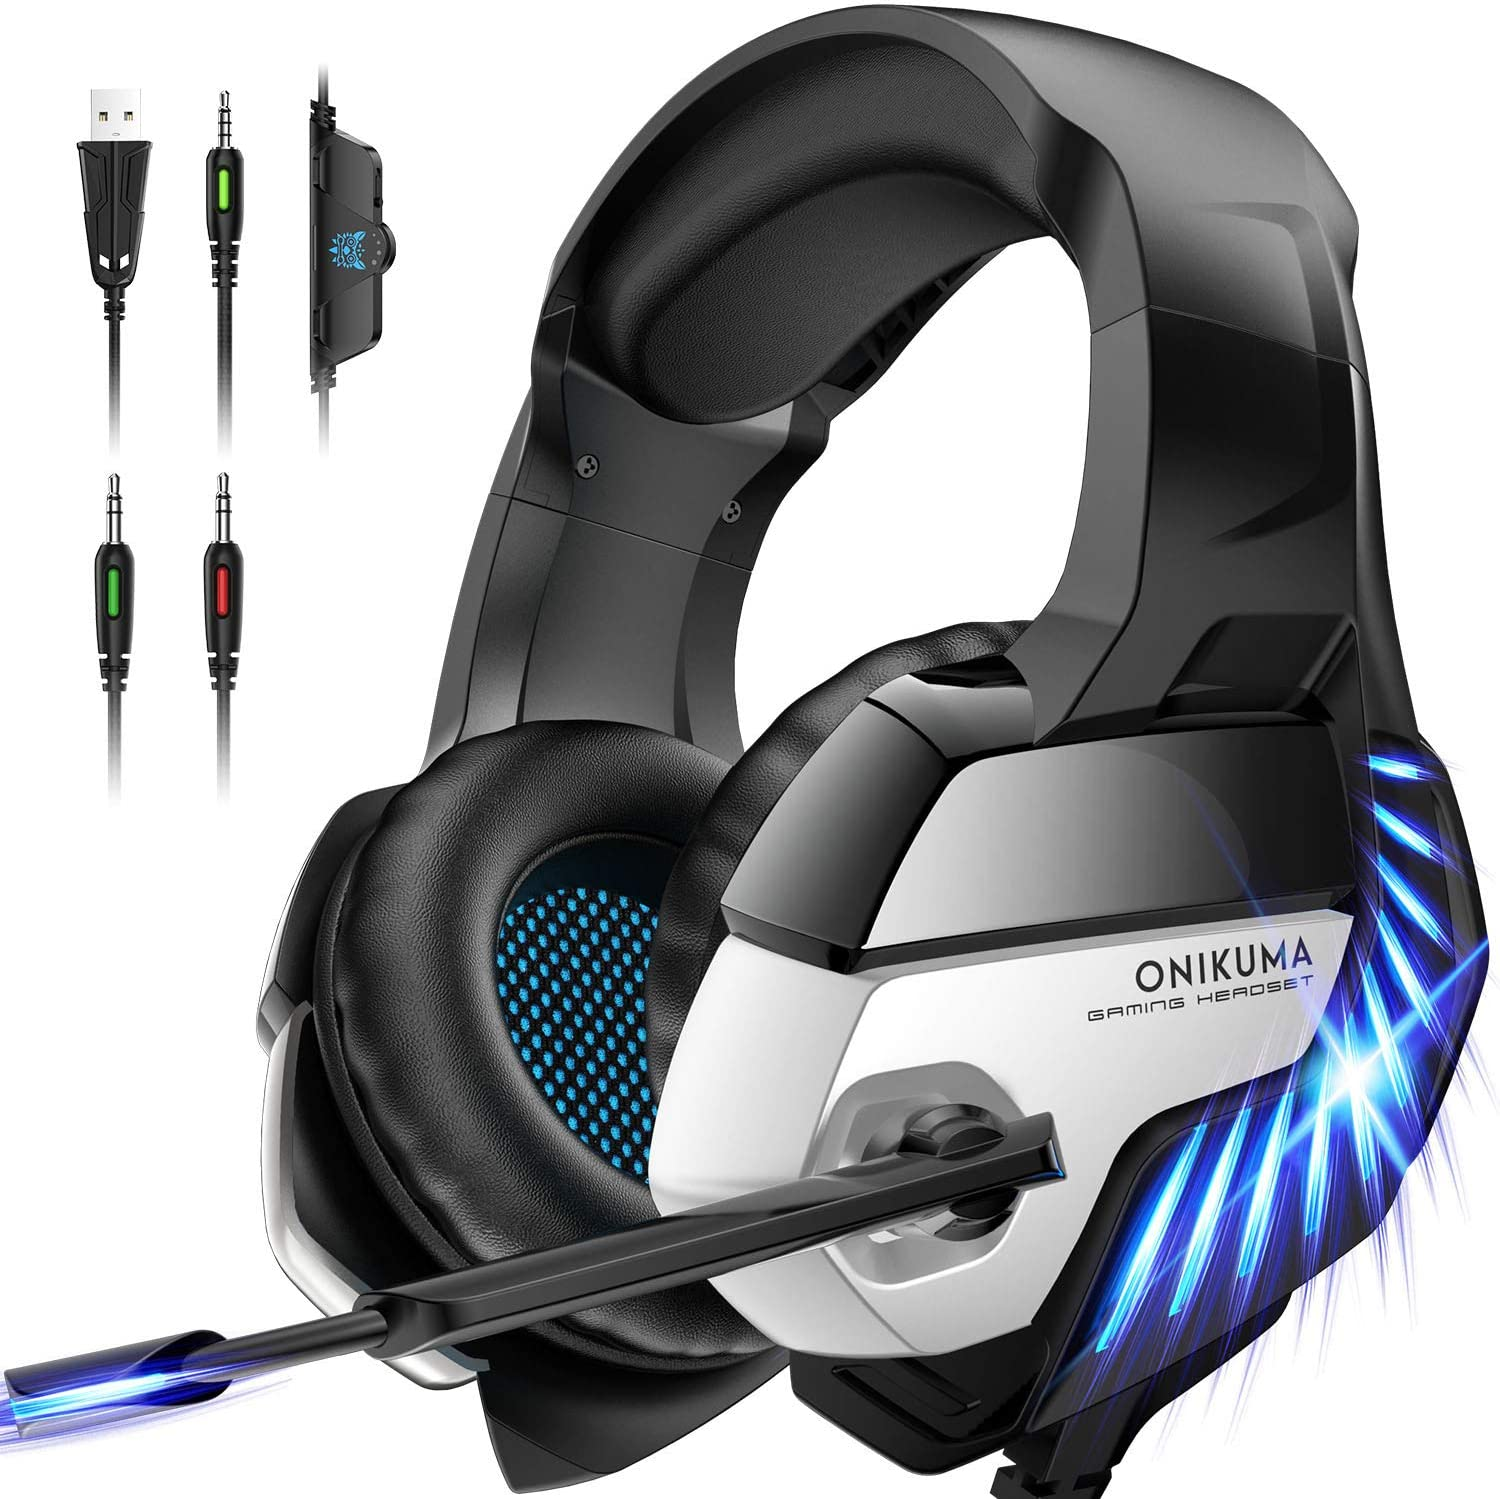 Amazon Com Onikuma Gaming Headset For Ps4 Gaming Headphones With 7 1 Surround Sound Xbox One Headset With Noise Canceling Mic Led Light Over Ear Headphones For Ps4 Xbox One Pc Mac Laptop Black Computers